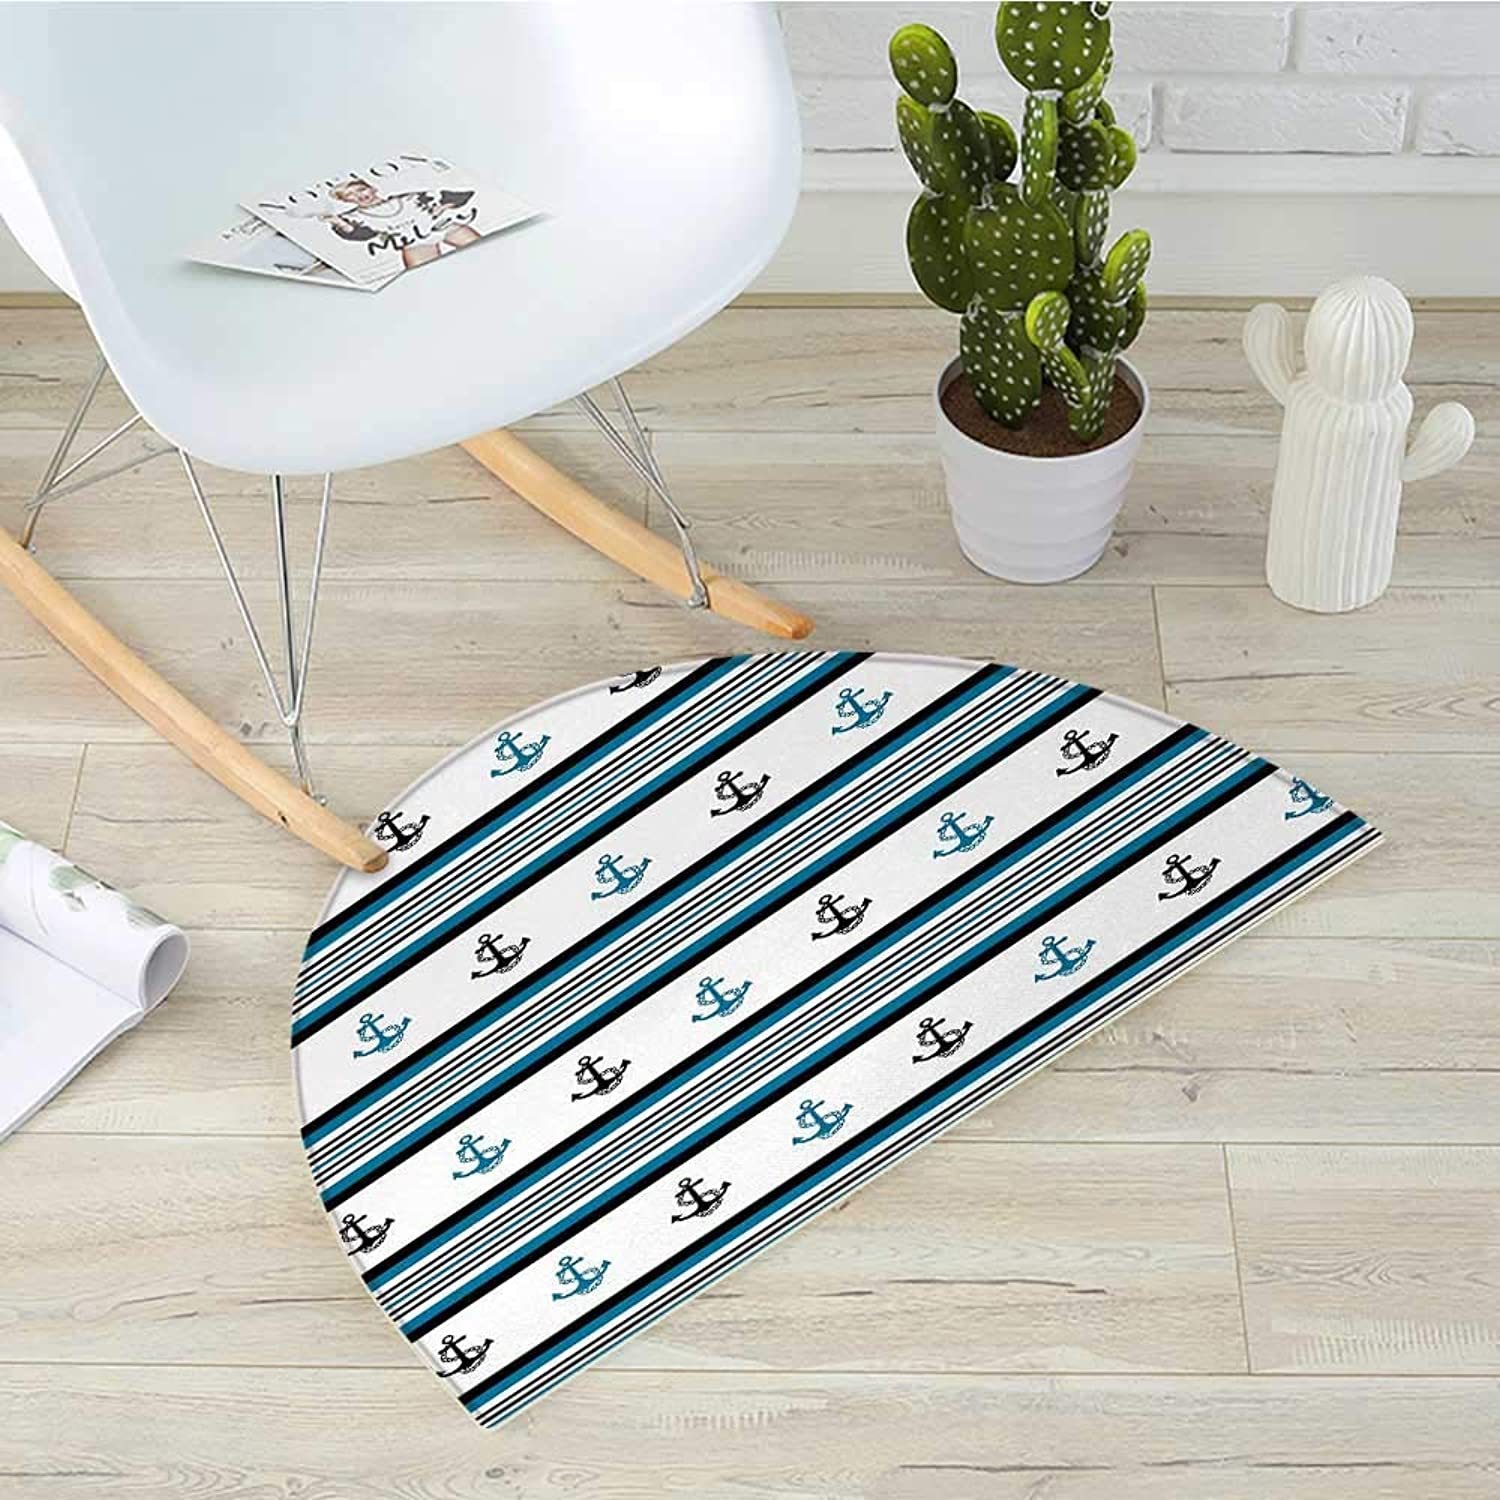 Anchor Half Round Door mats Borders with Stripes and Anchor Figures Hipster Design Retro Style Maritime Bathroom Mat H 35.4  xD 53.1  bluee Black White